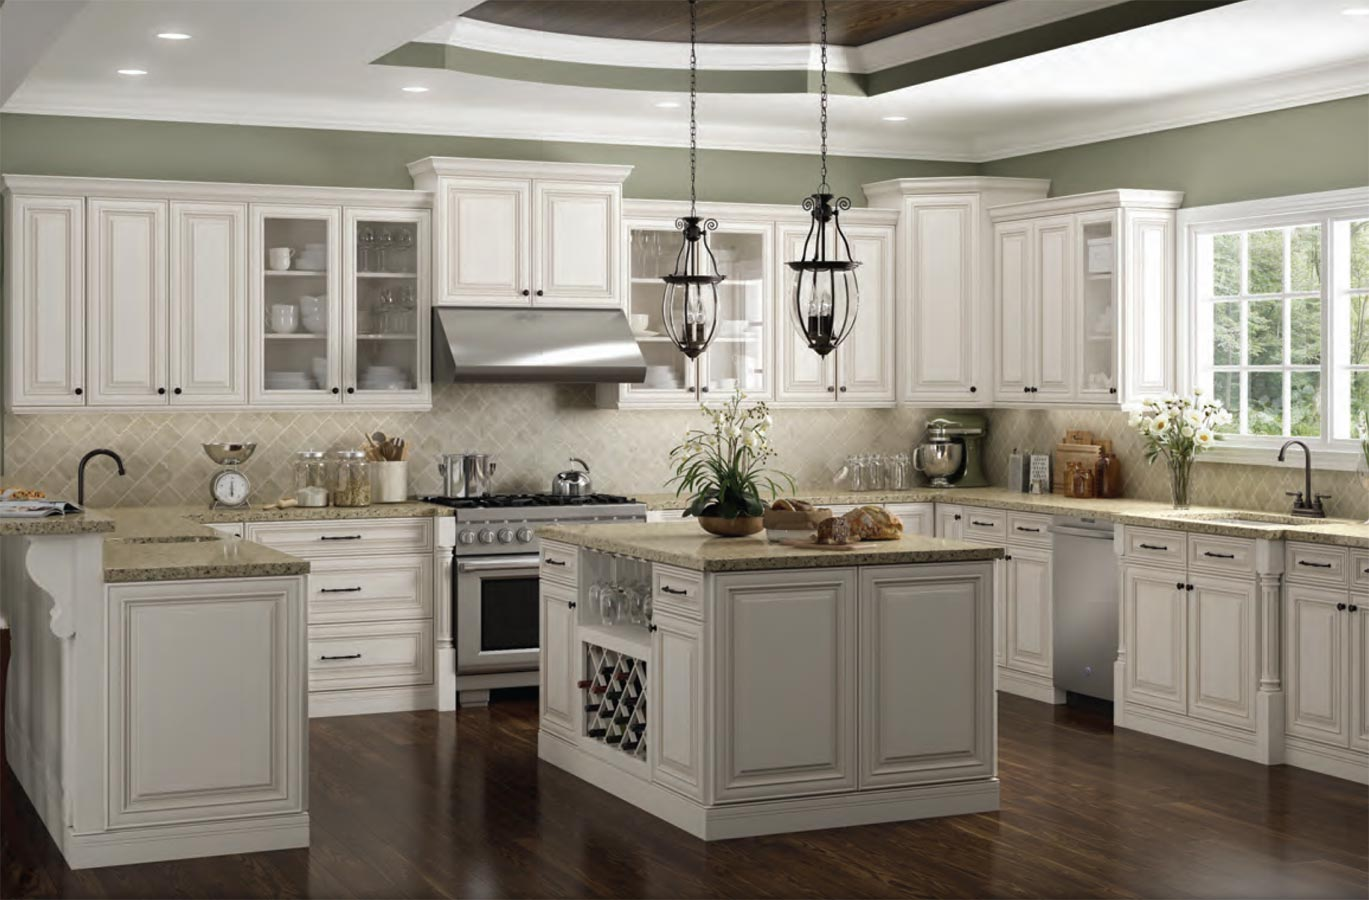 Painted kitchen cabinets cabinet ideas houselogic home for White kitchen cupboards